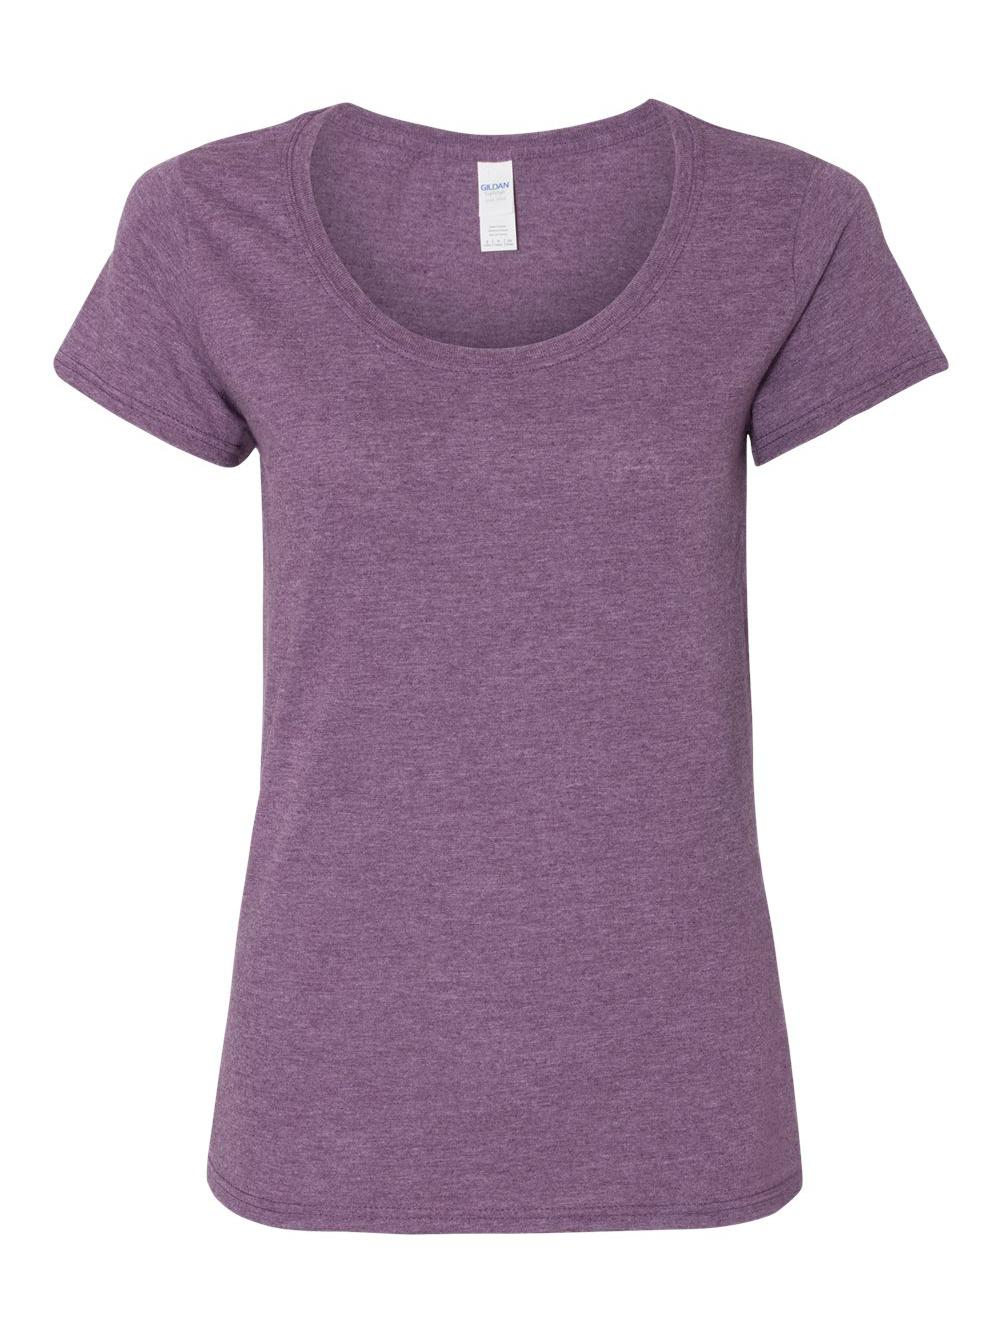 Gildan-Softstyle-Women-039-s-Deep-Scoopneck-T-Shirt-64550L thumbnail 15